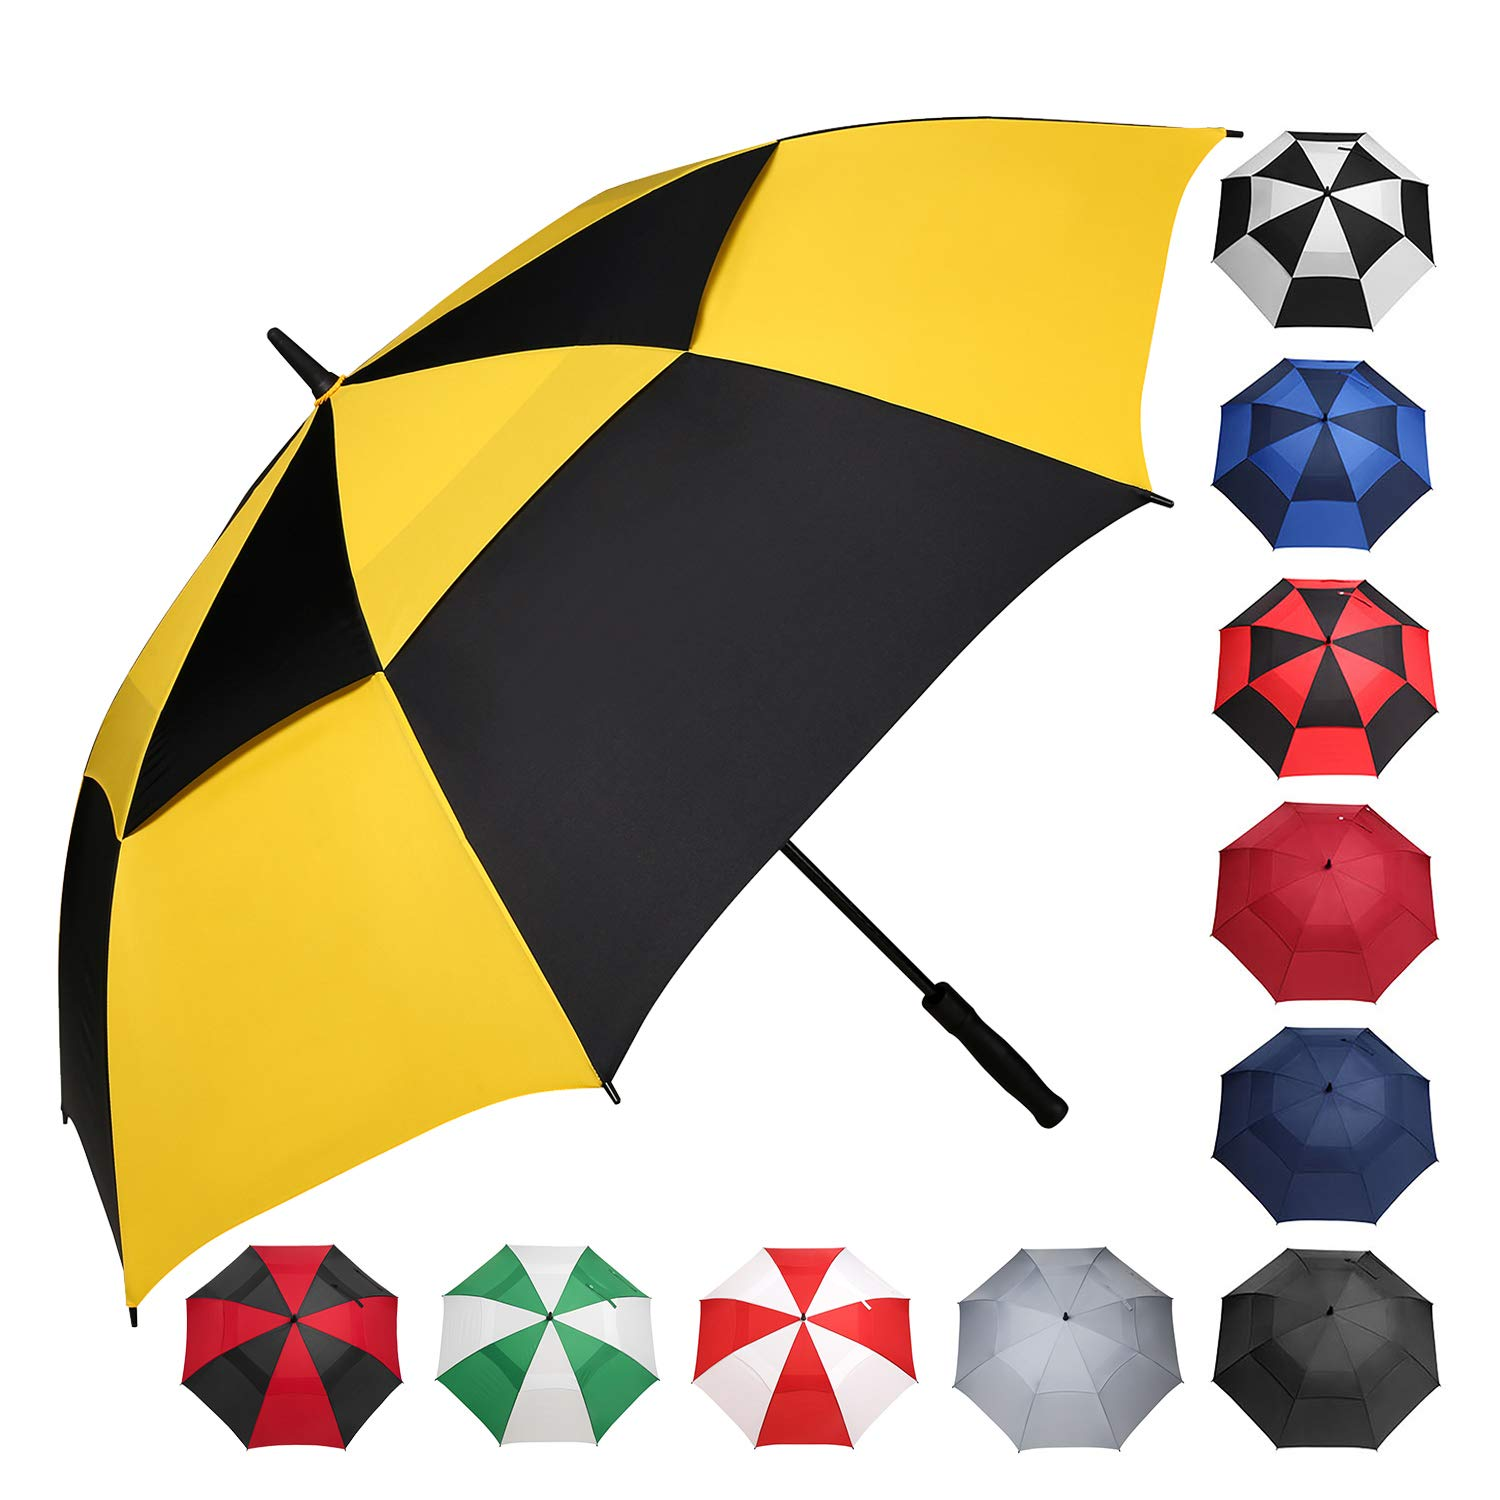 BAGAIL Golf Umbrella 68/62/58 Inch Large Oversize Double Canopy Vented Windproof Waterproof Automatic Open Stick Umbrellas for Men and Women (Yellow Black, 62 inch) by BAGAIL